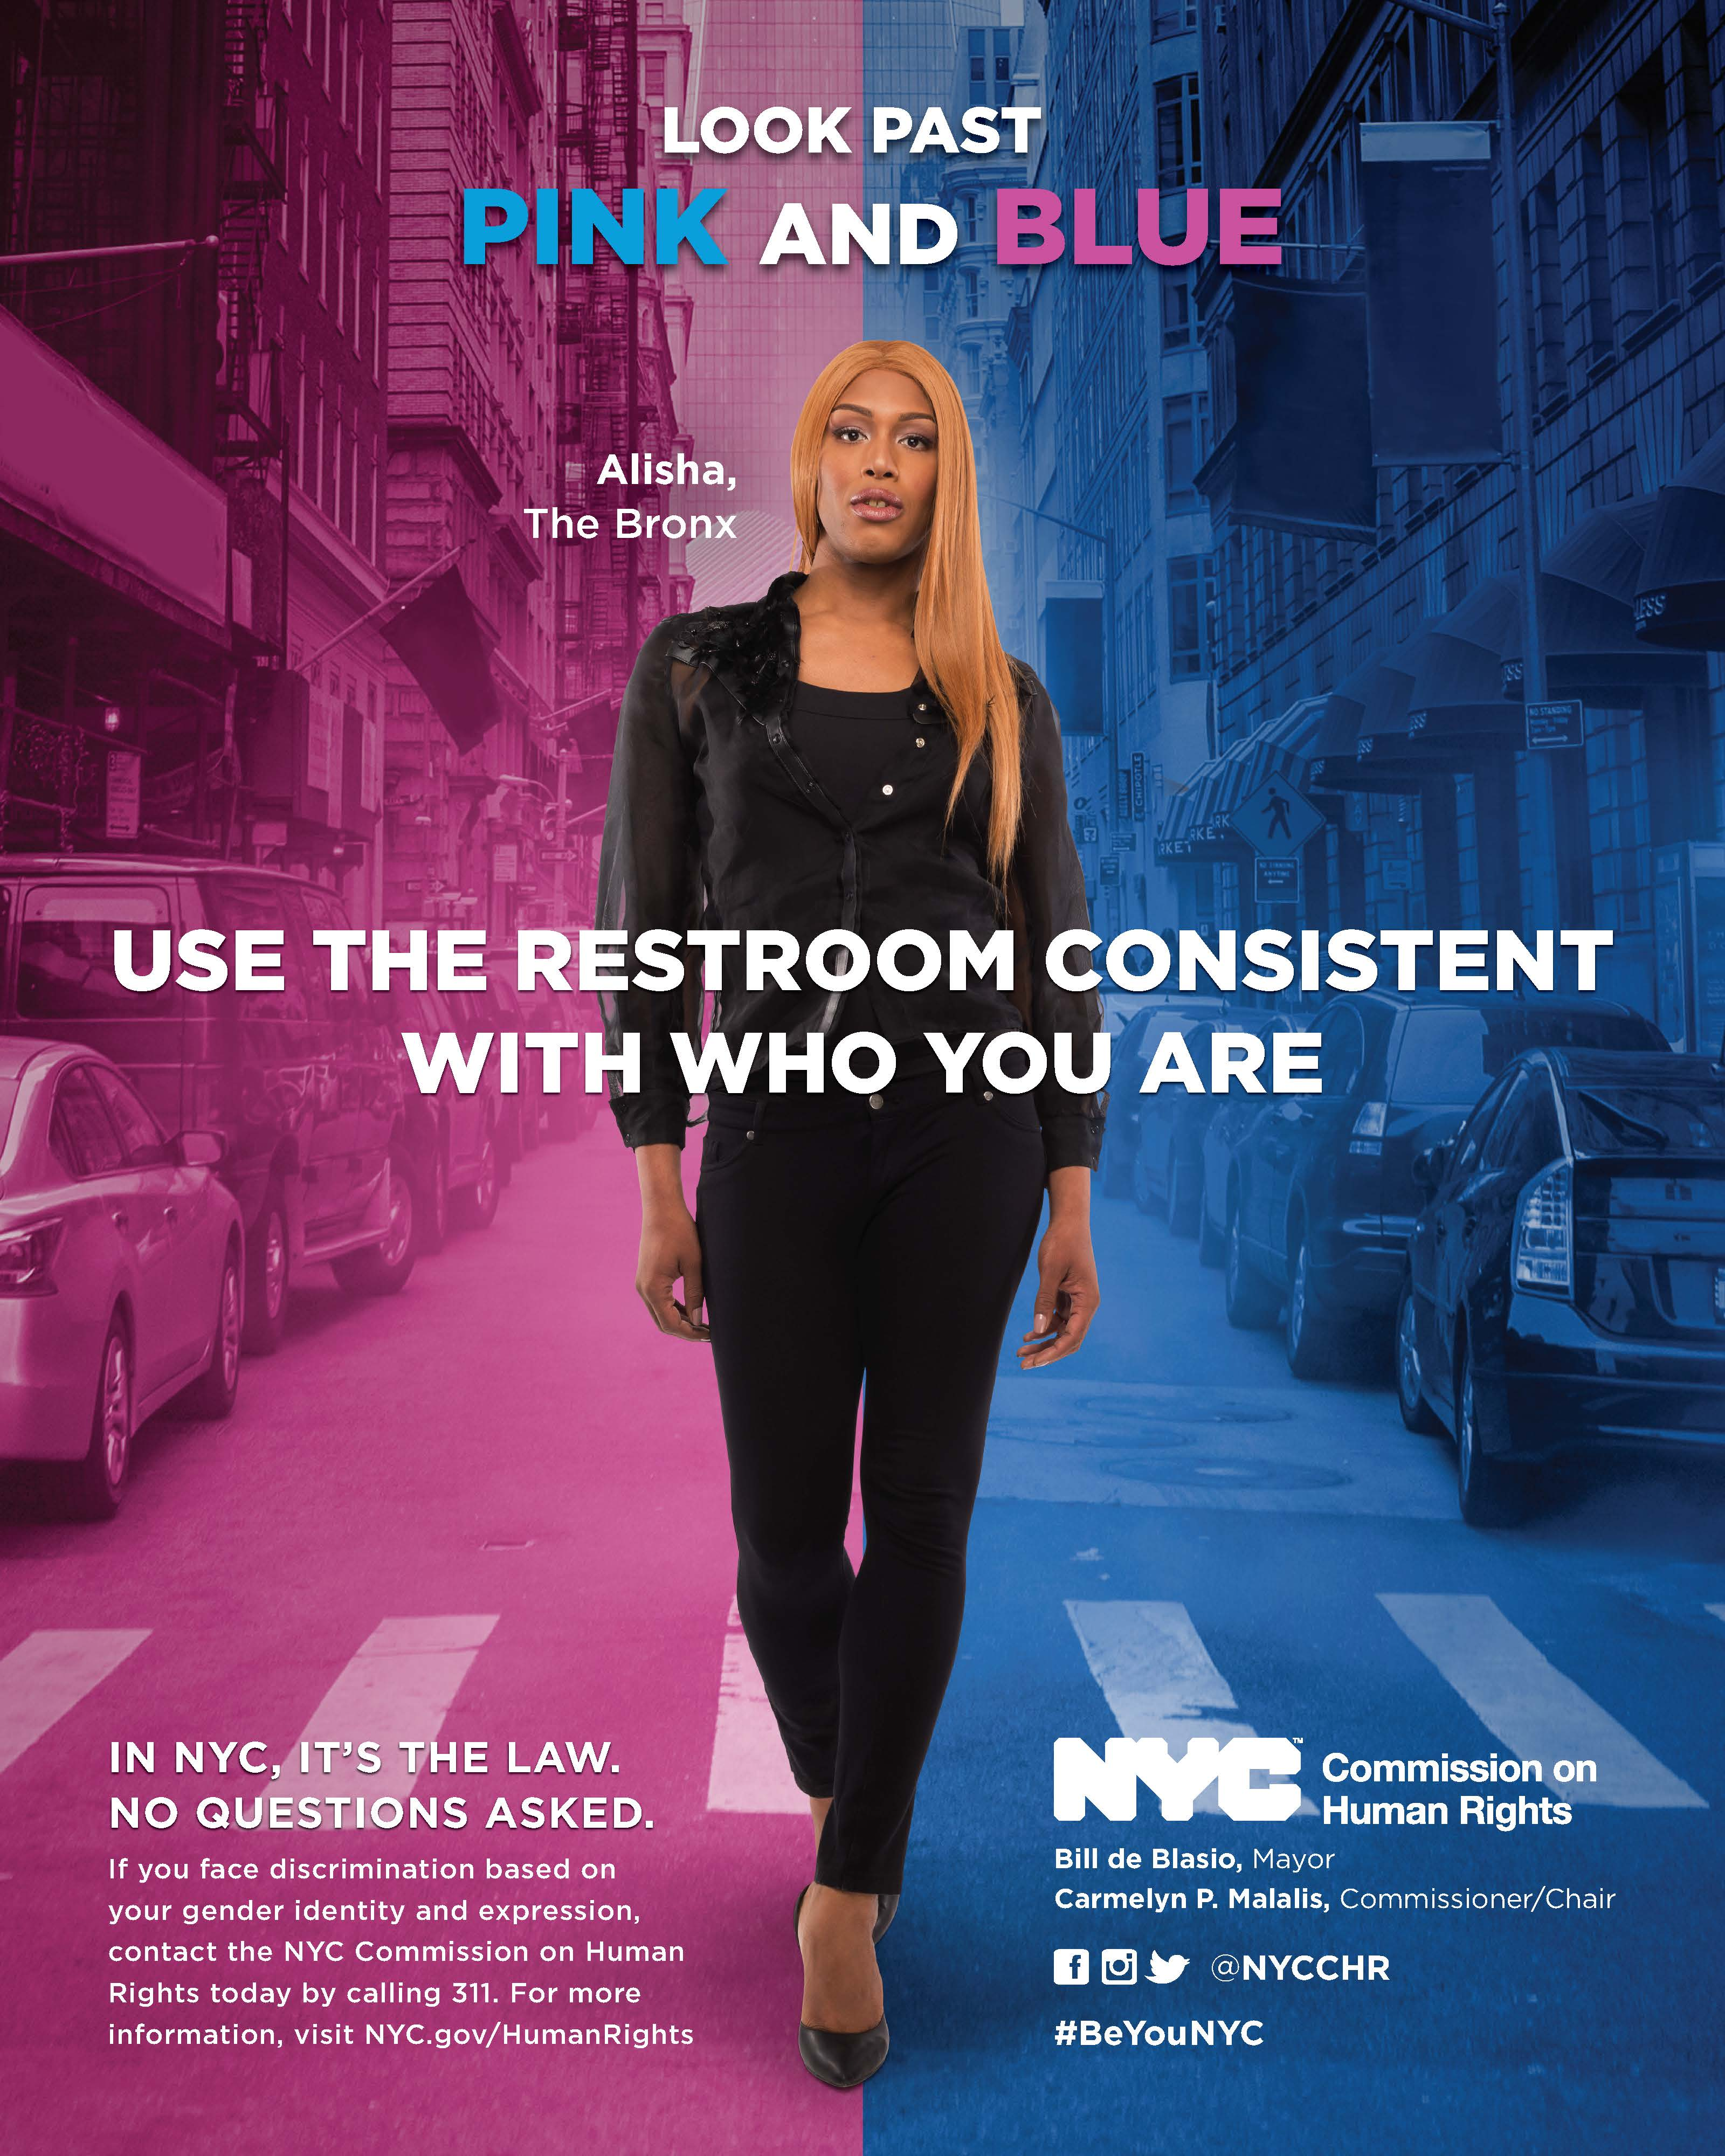 Nyc Commission On Human Rights Quot Look Past Pink And Blue Quot Transgender Bathroom Rights Campaign